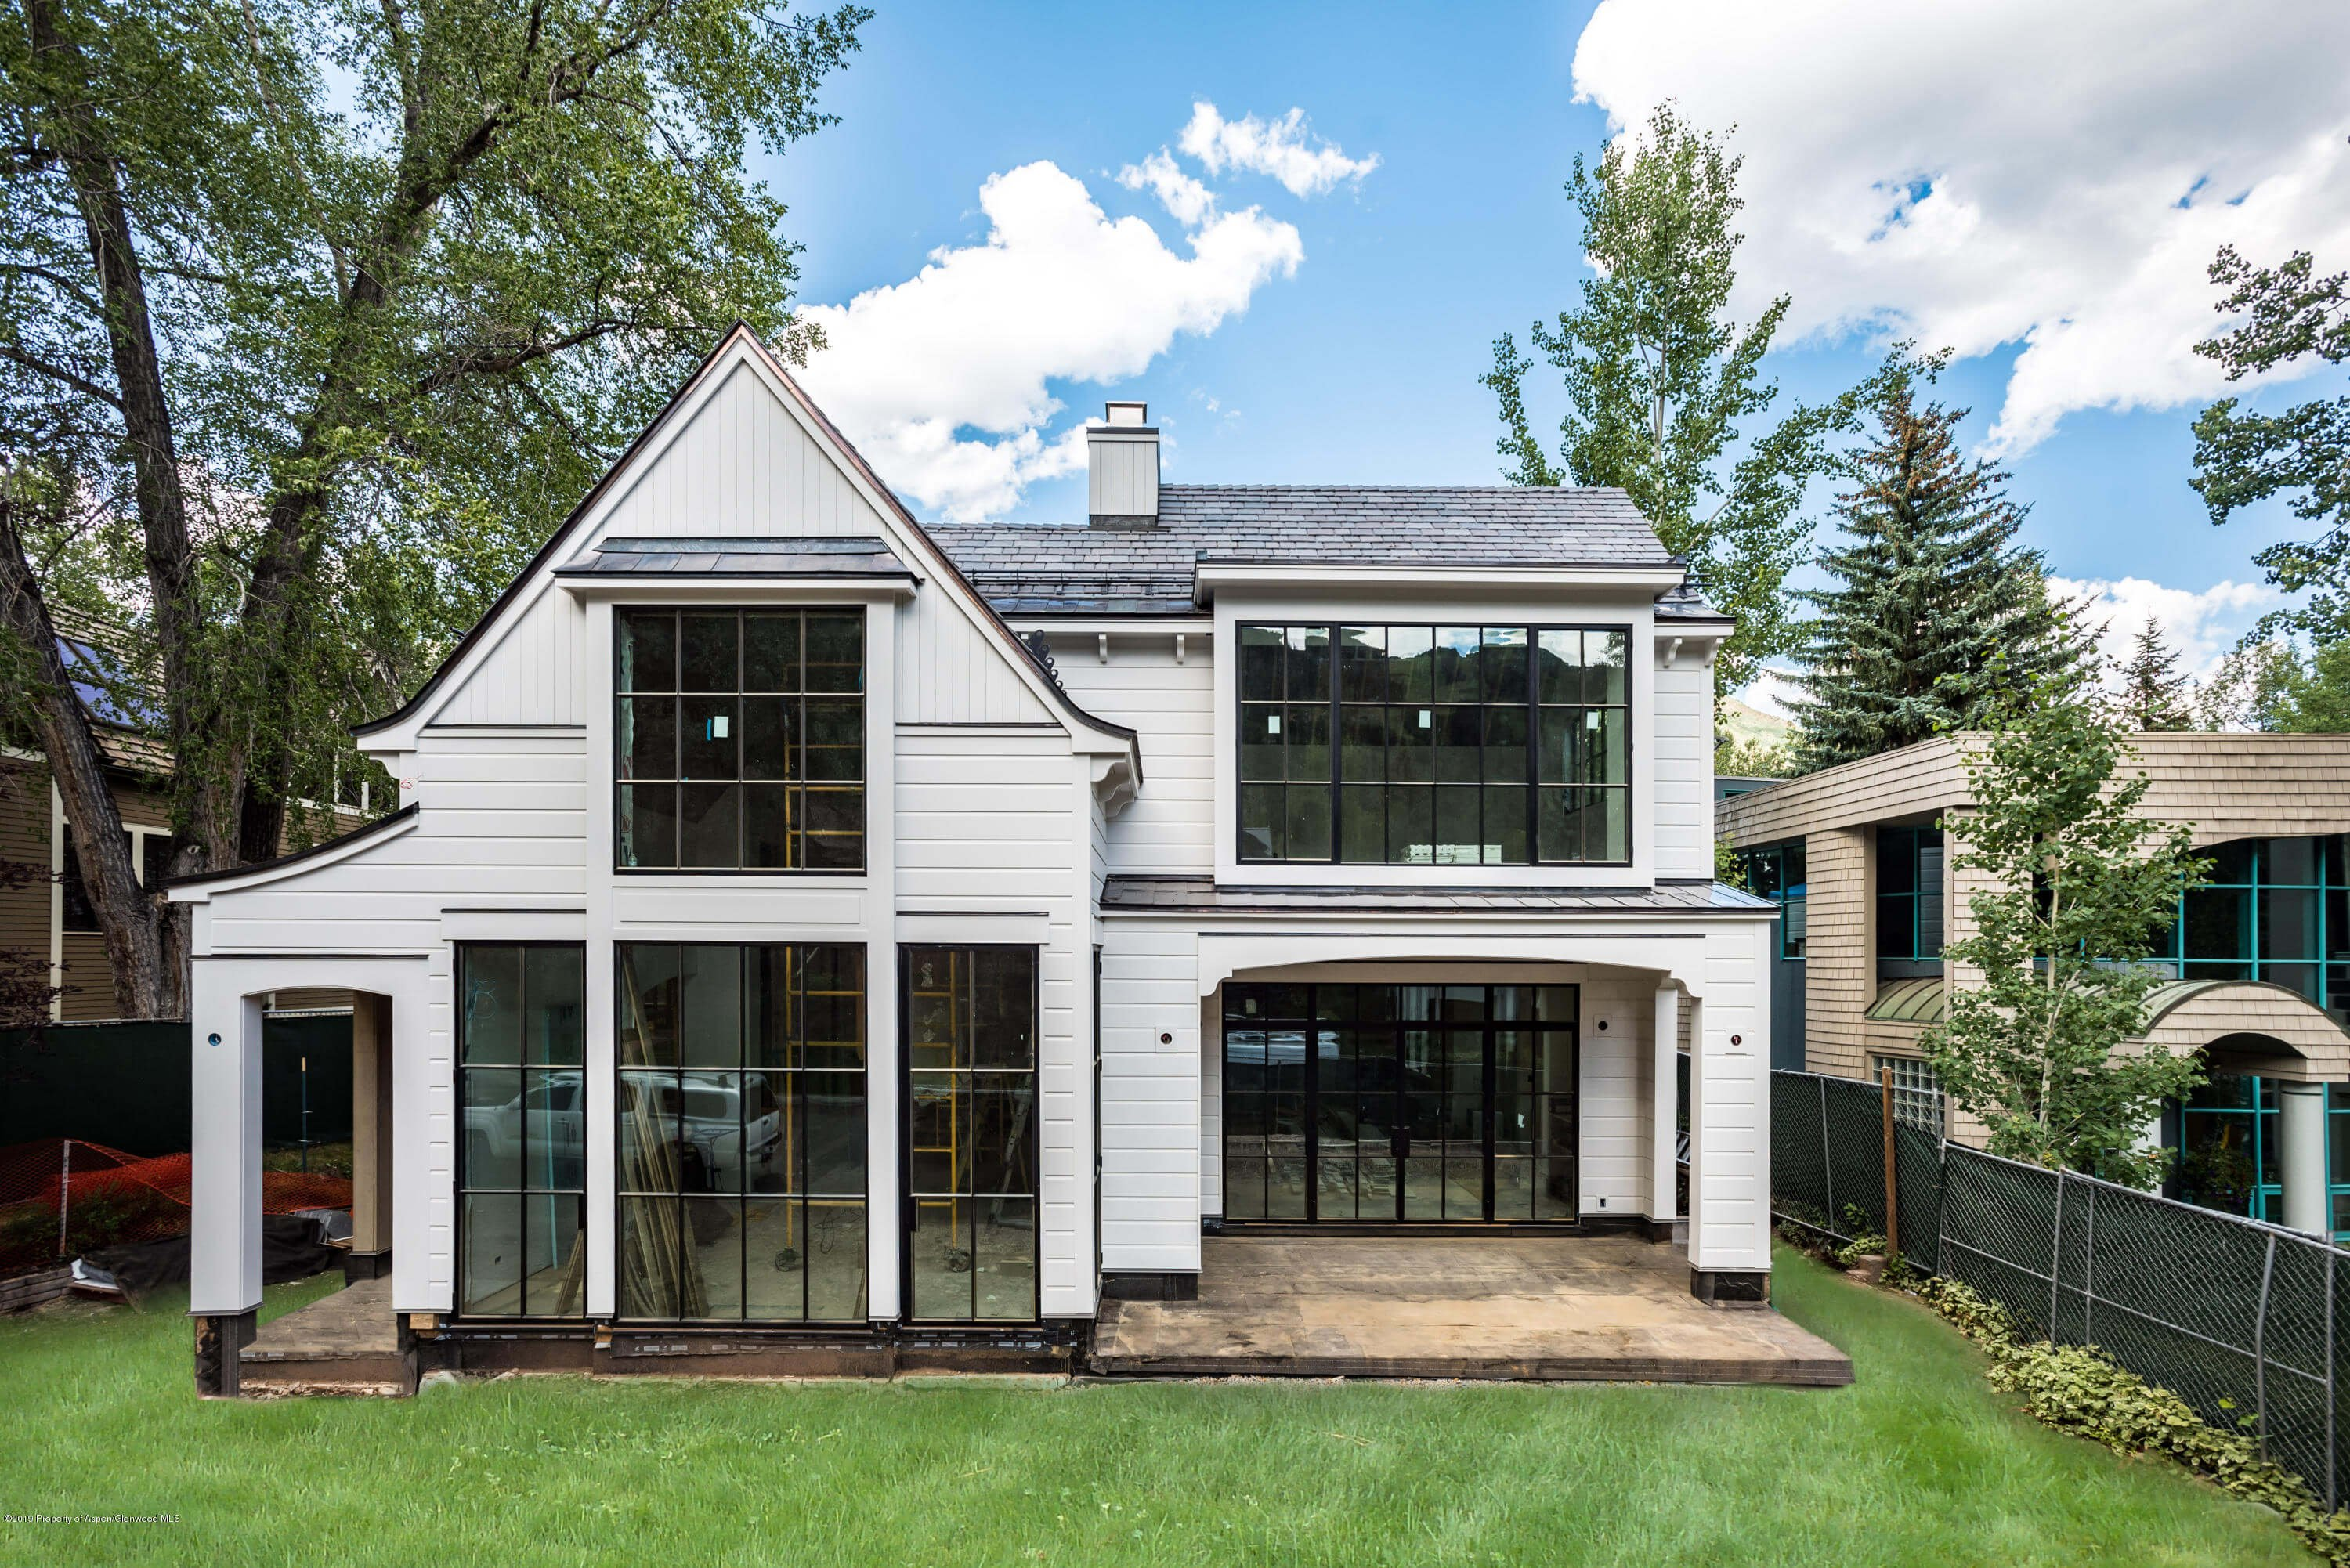 2019 Built West End Home at 320 W Bleeker St Closes at $16.875MM/$2,848 SF Unfurnished Image